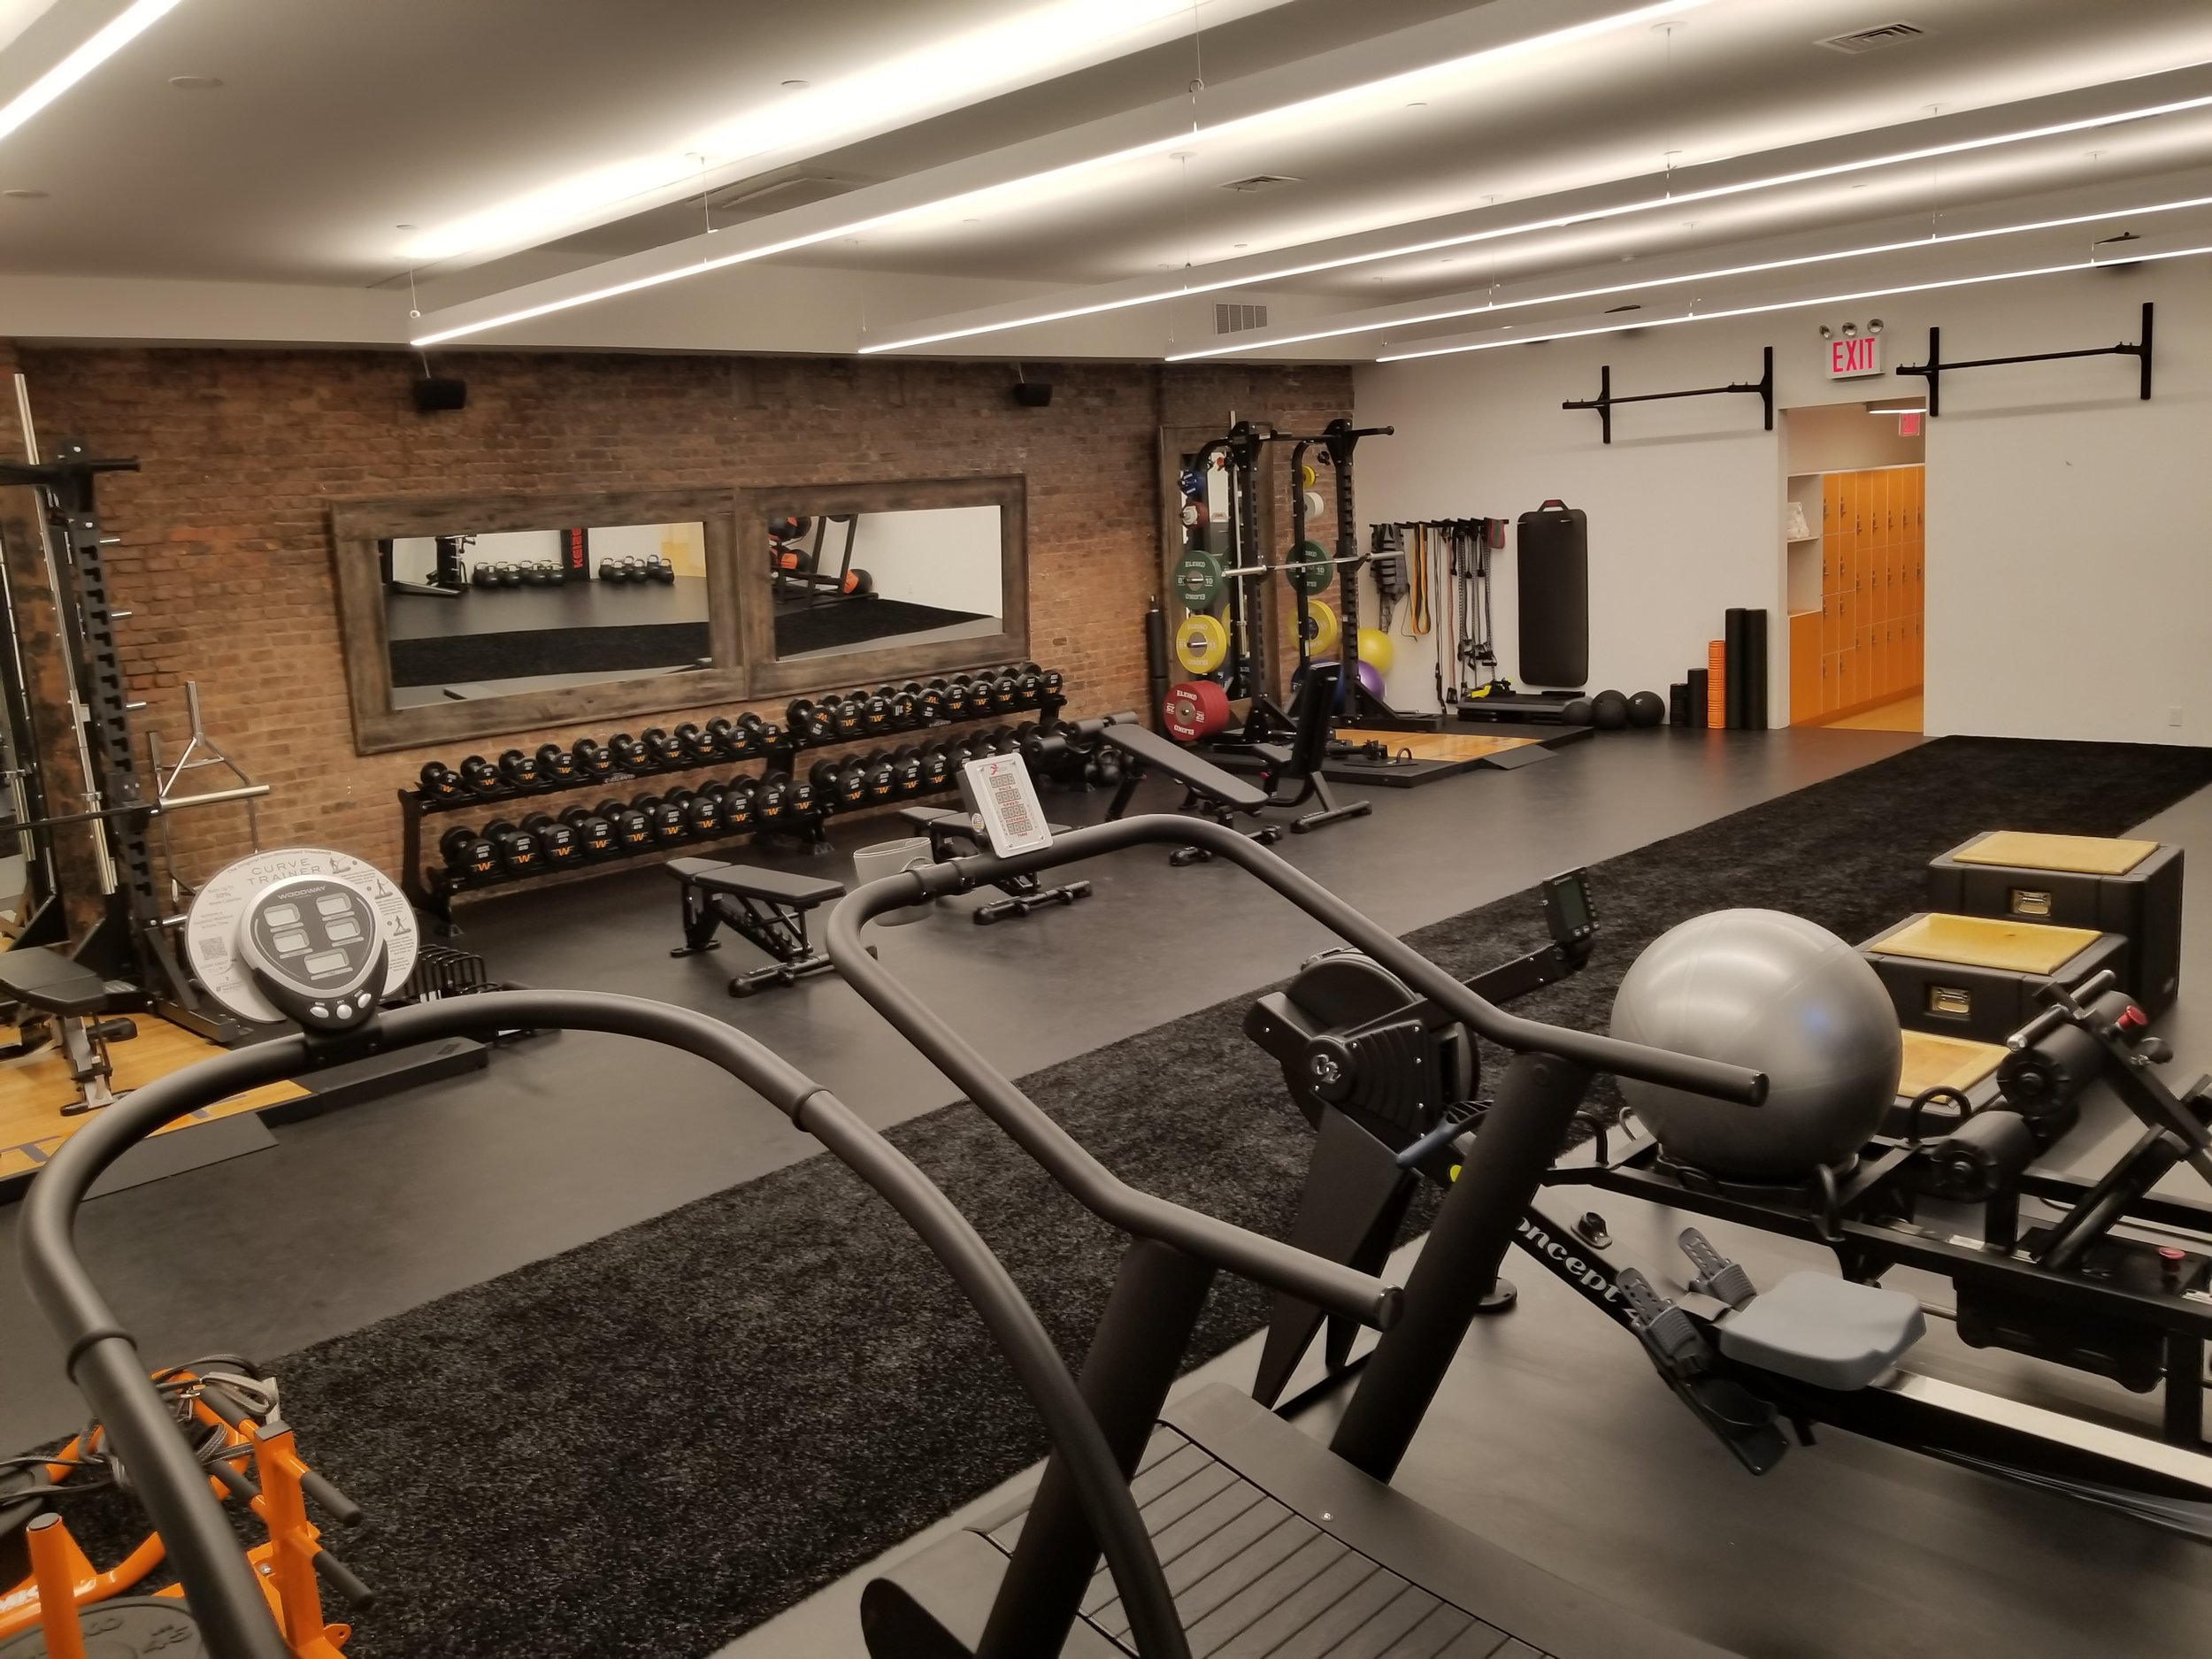 Our private training facility in partnership with TWF in Manhattan's Chelsea neighborhood has full towel service and shower facilities as well as top of the line equipment.